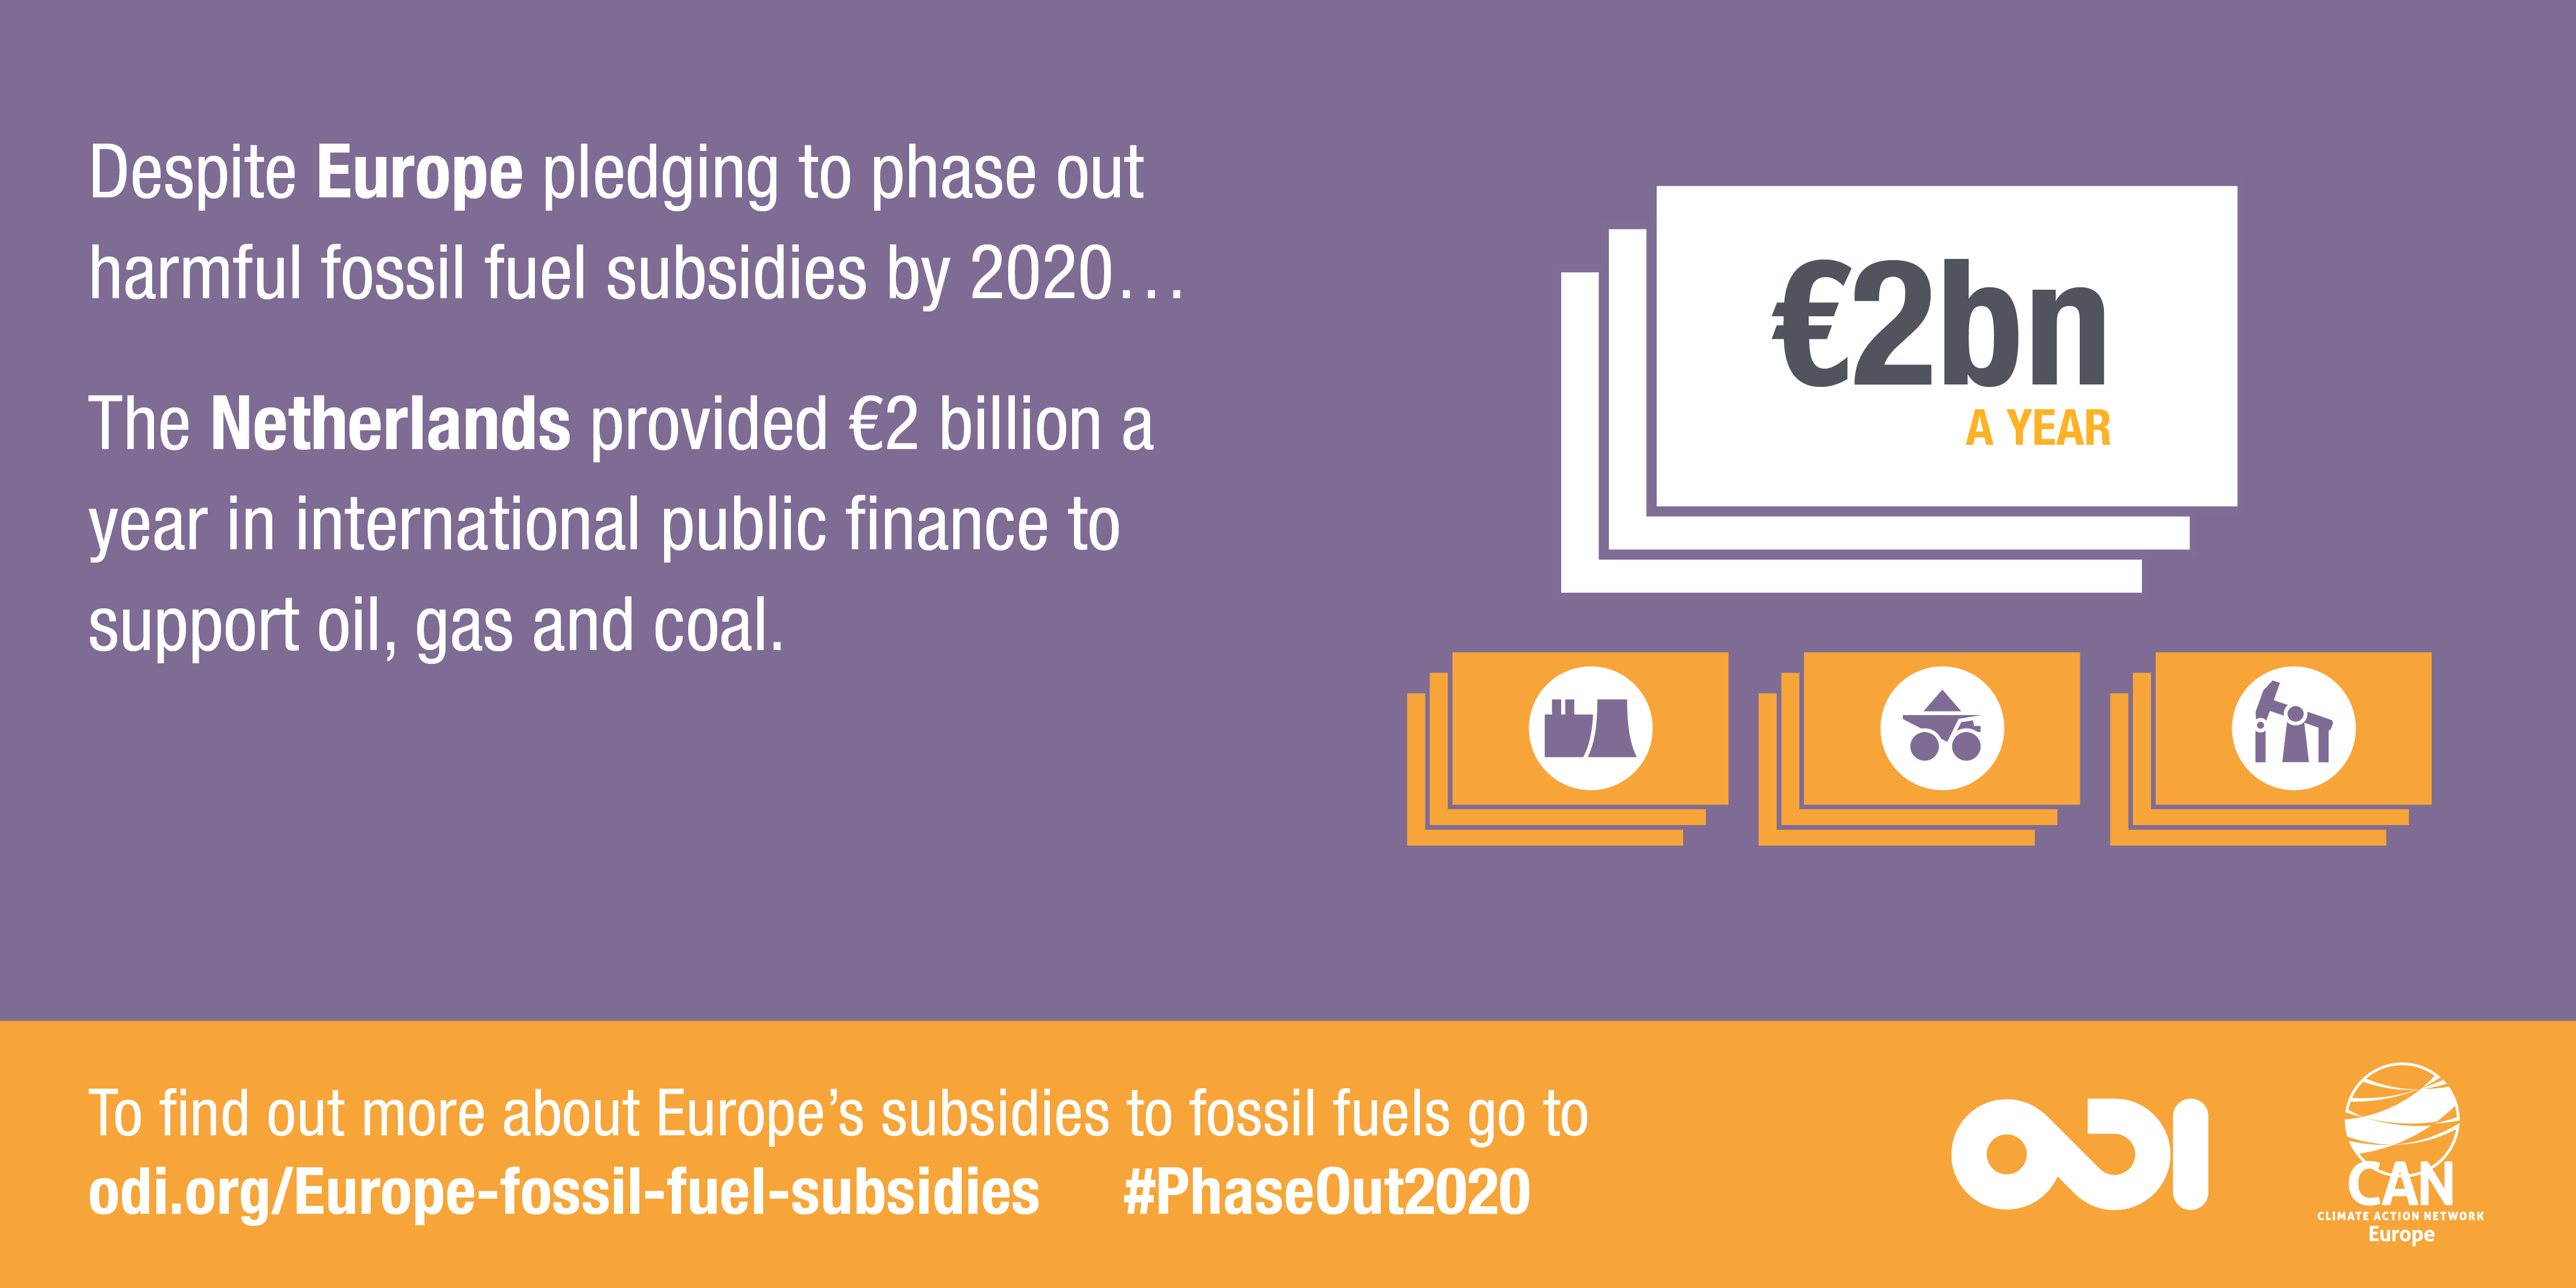 Infographic: the Netherlands provided €2 billion a year in international public finance to support oil, gas and coal